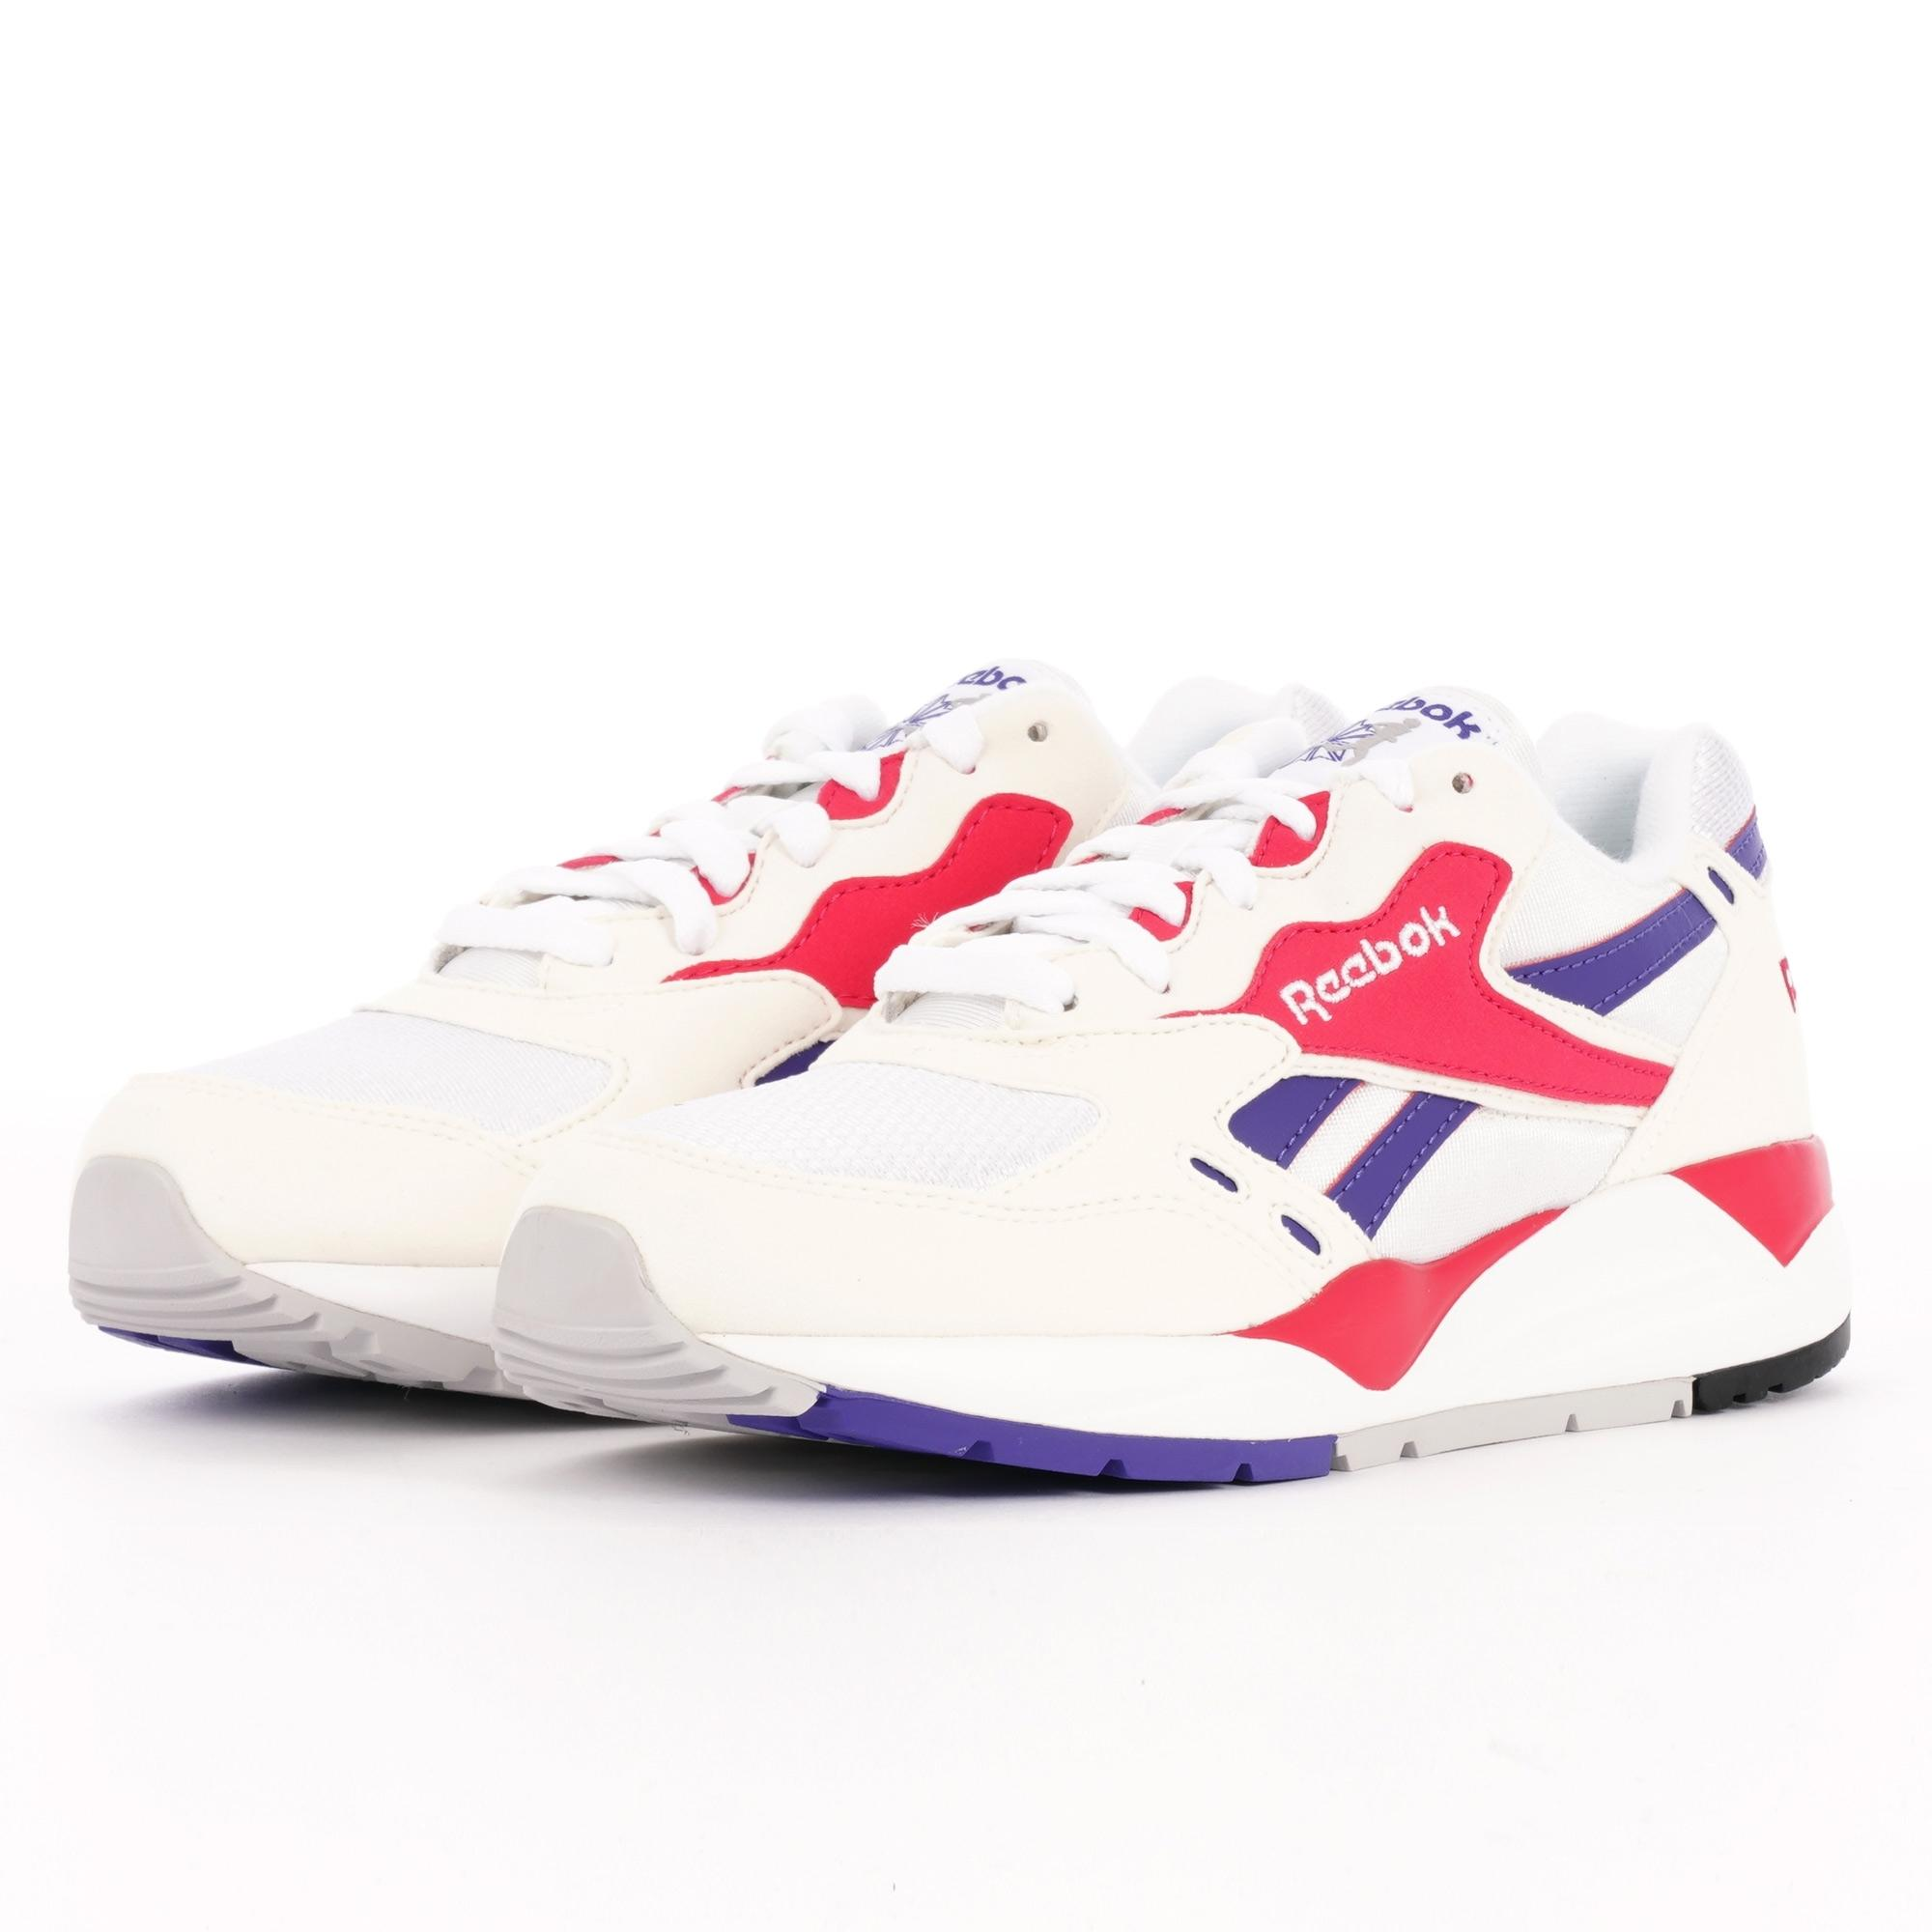 163e501cea7 Lyst - Reebok Bolton - Chalk, White & Magenta Pop in White for Men